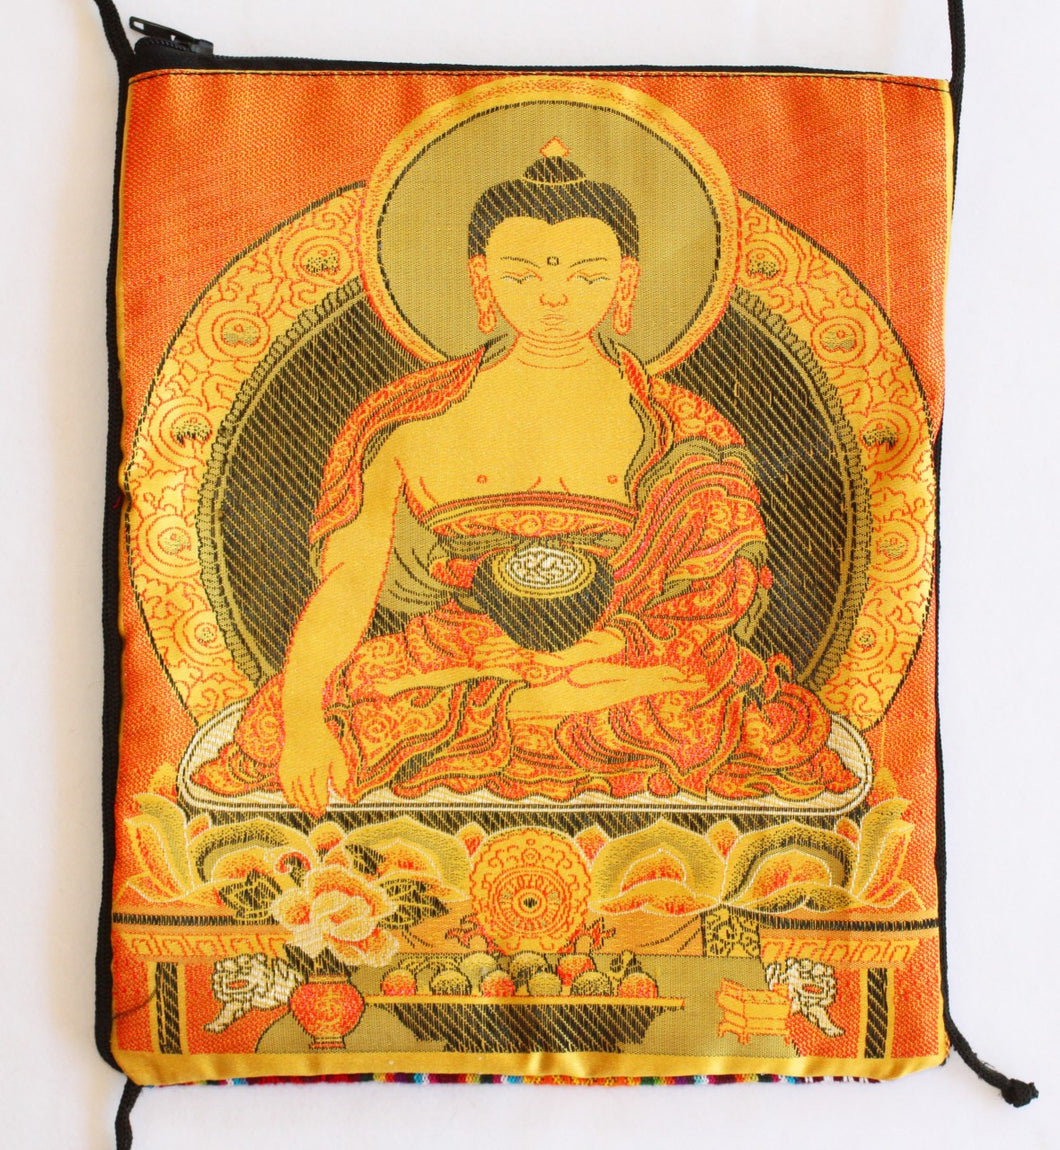 Tarot Bag with Golden Buddha Passport Bag